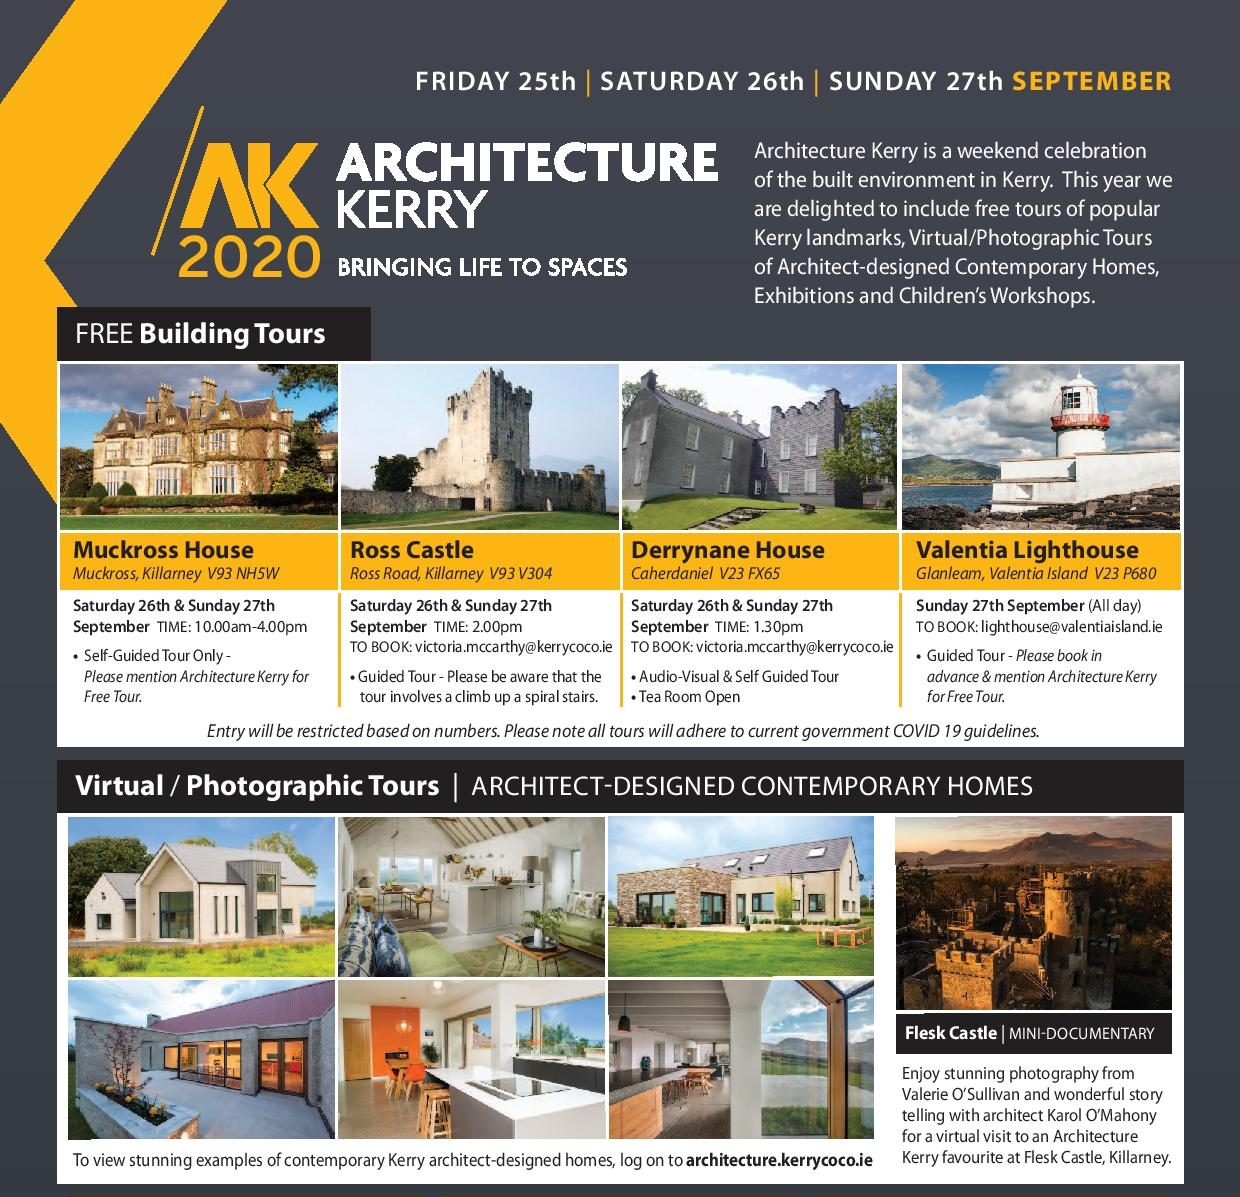 Architecture Kerry 2020